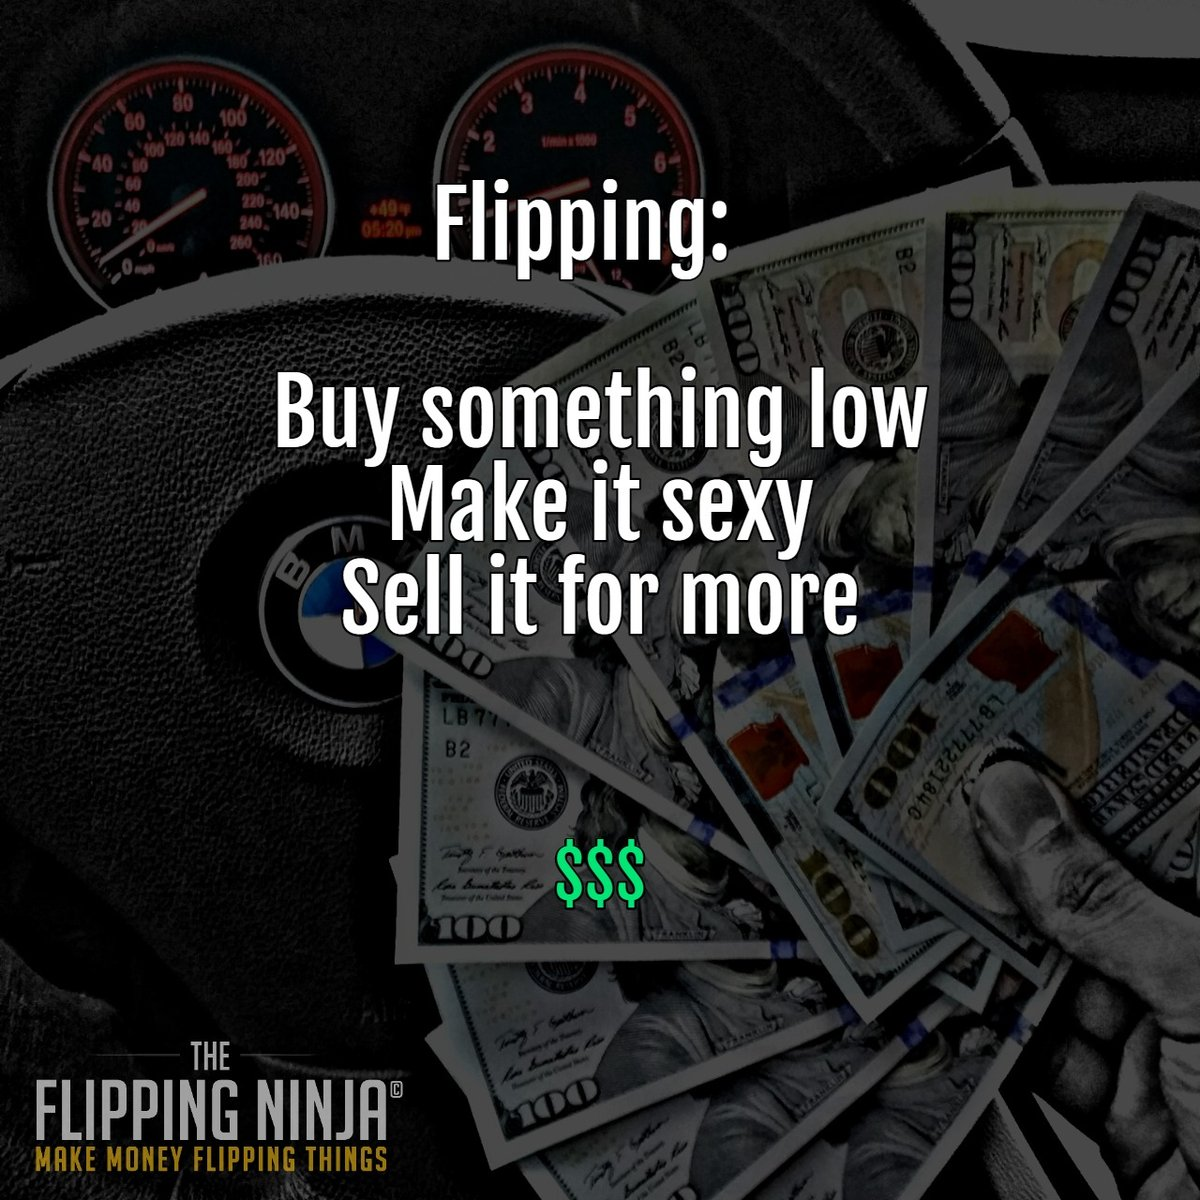 The beauty of making money flipping is that it's simple.⁠ Nothing confusing or hard to learn. Learn it once, make money for the rest of your life  #flipping #hustle #sidehustle #marketing #entrepreneurship #motivation #sales #entrepreneur #business #beyourownboss  #flipping4cashpic.twitter.com/hhDiroGBbo